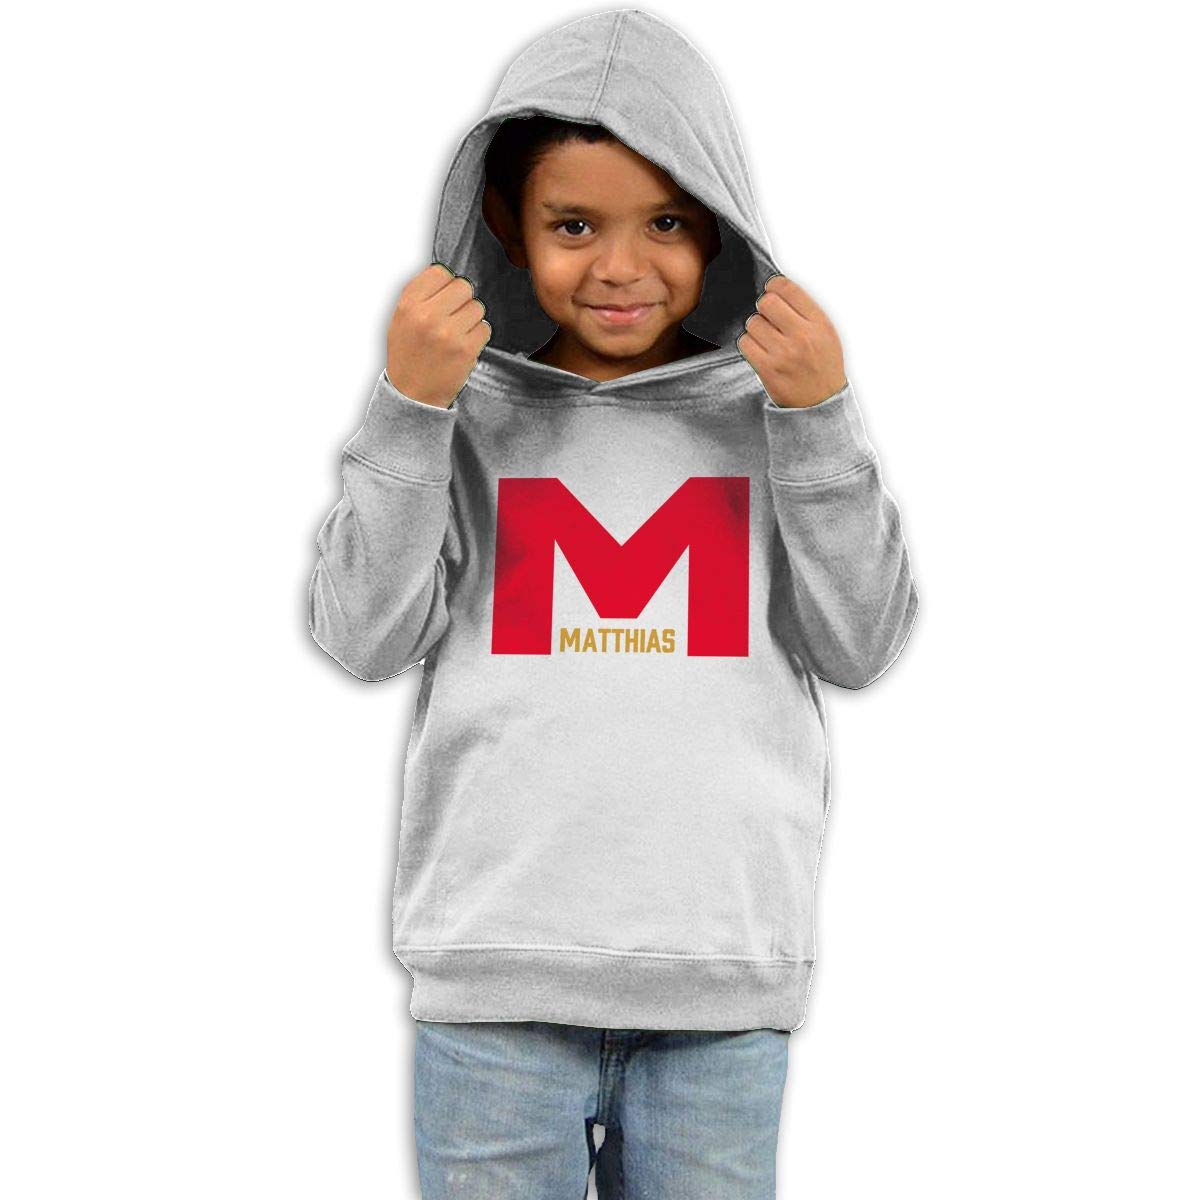 Stacy J. Payne Toddler Matthias Cool Hoody39 White by Stacy J. Payne (Image #1)